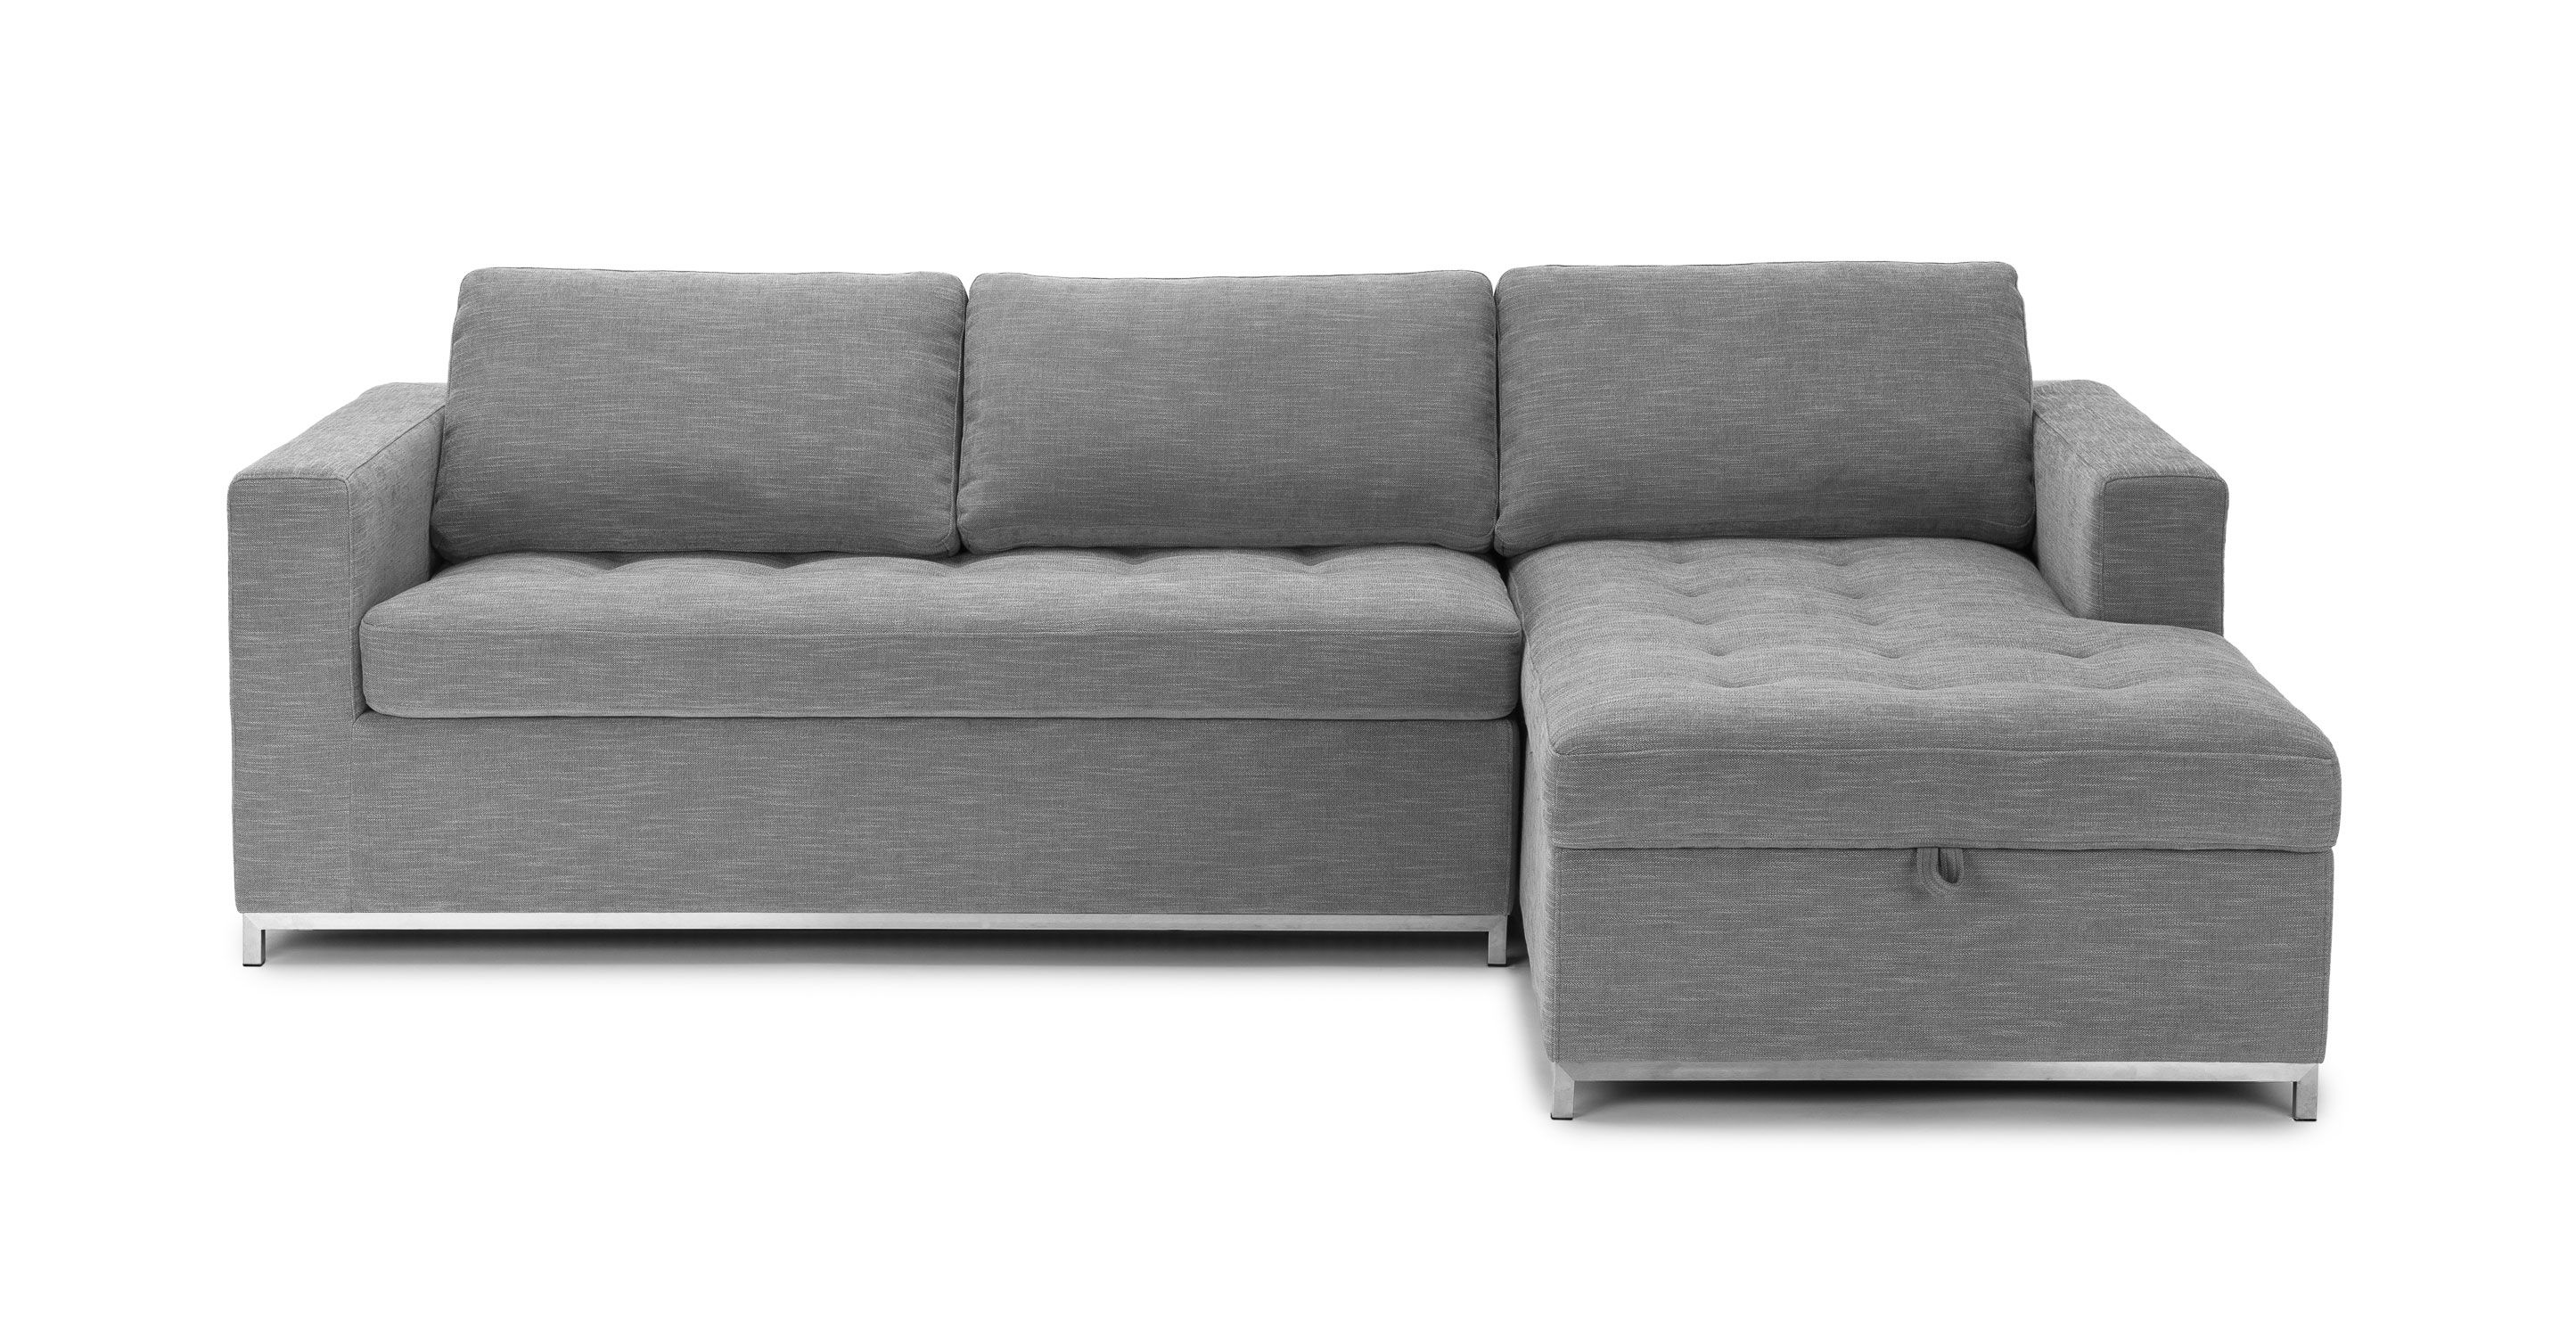 Article Soma Dawn Gray Right Sofa Bed